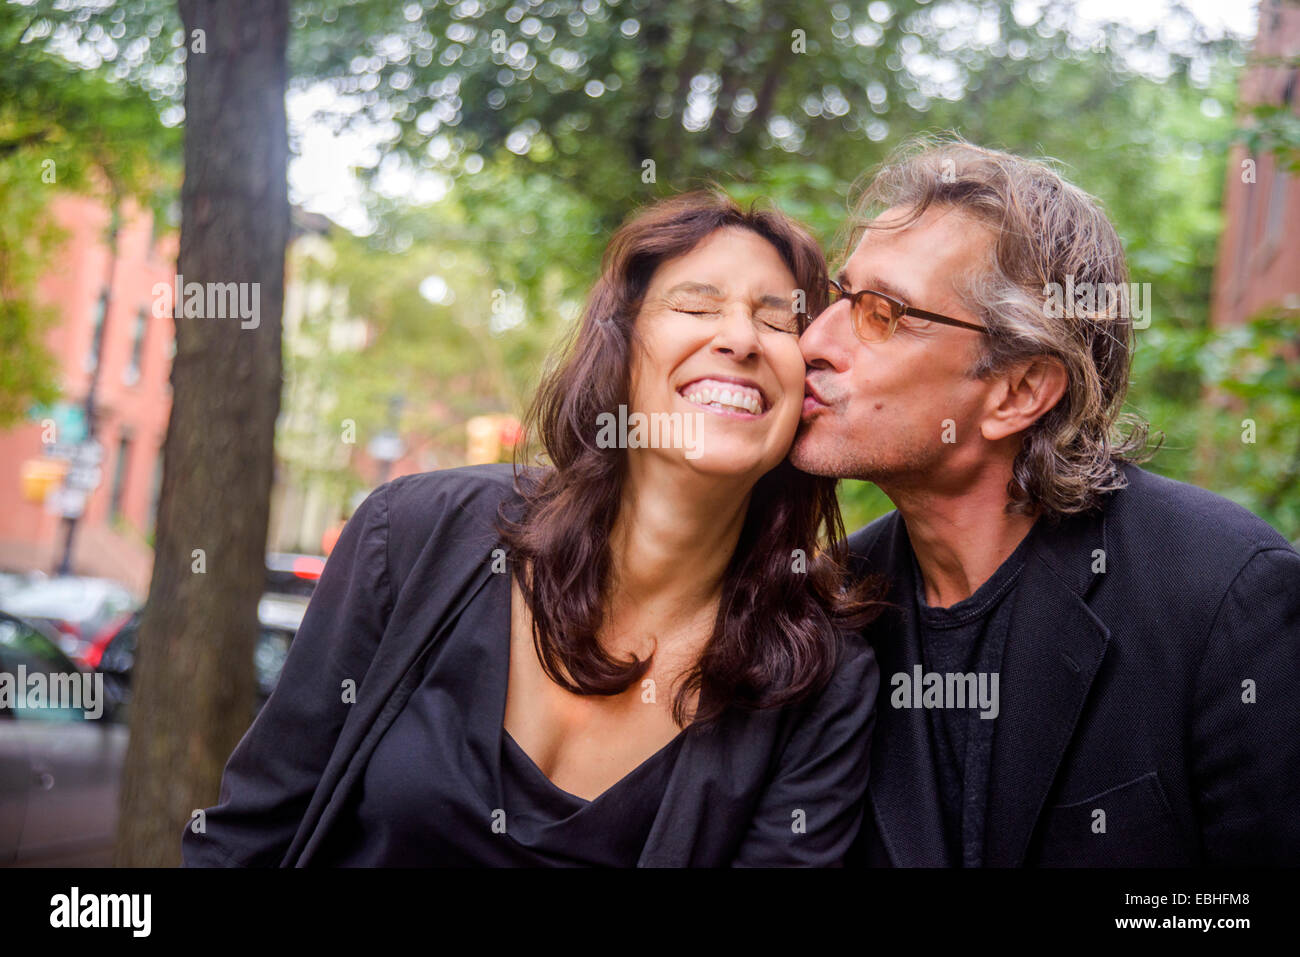 Portrait of romantic mature couple on city street - Stock Image